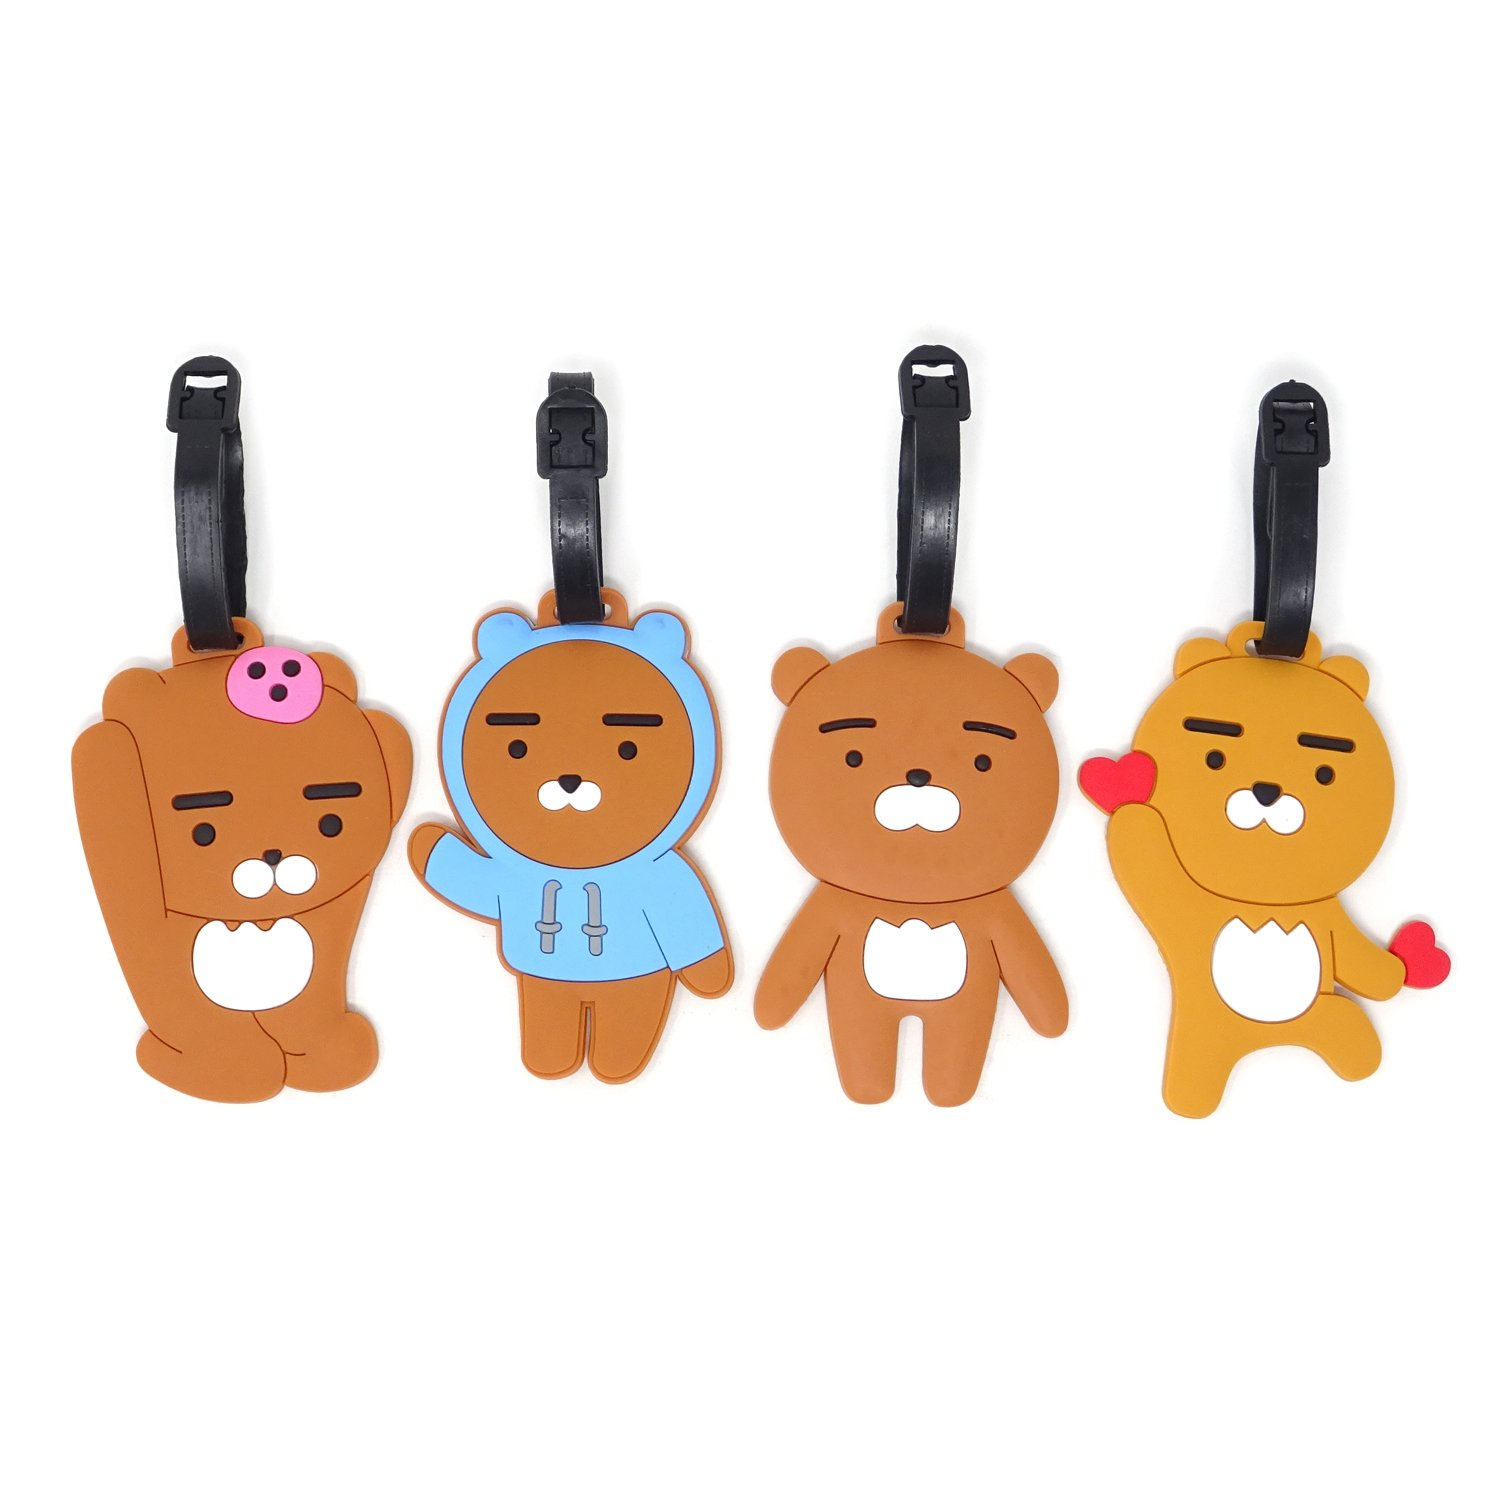 Honbay 4PCS Super Cute Cartoon Brown Bear Luggage Tags for Travel or Business Trip